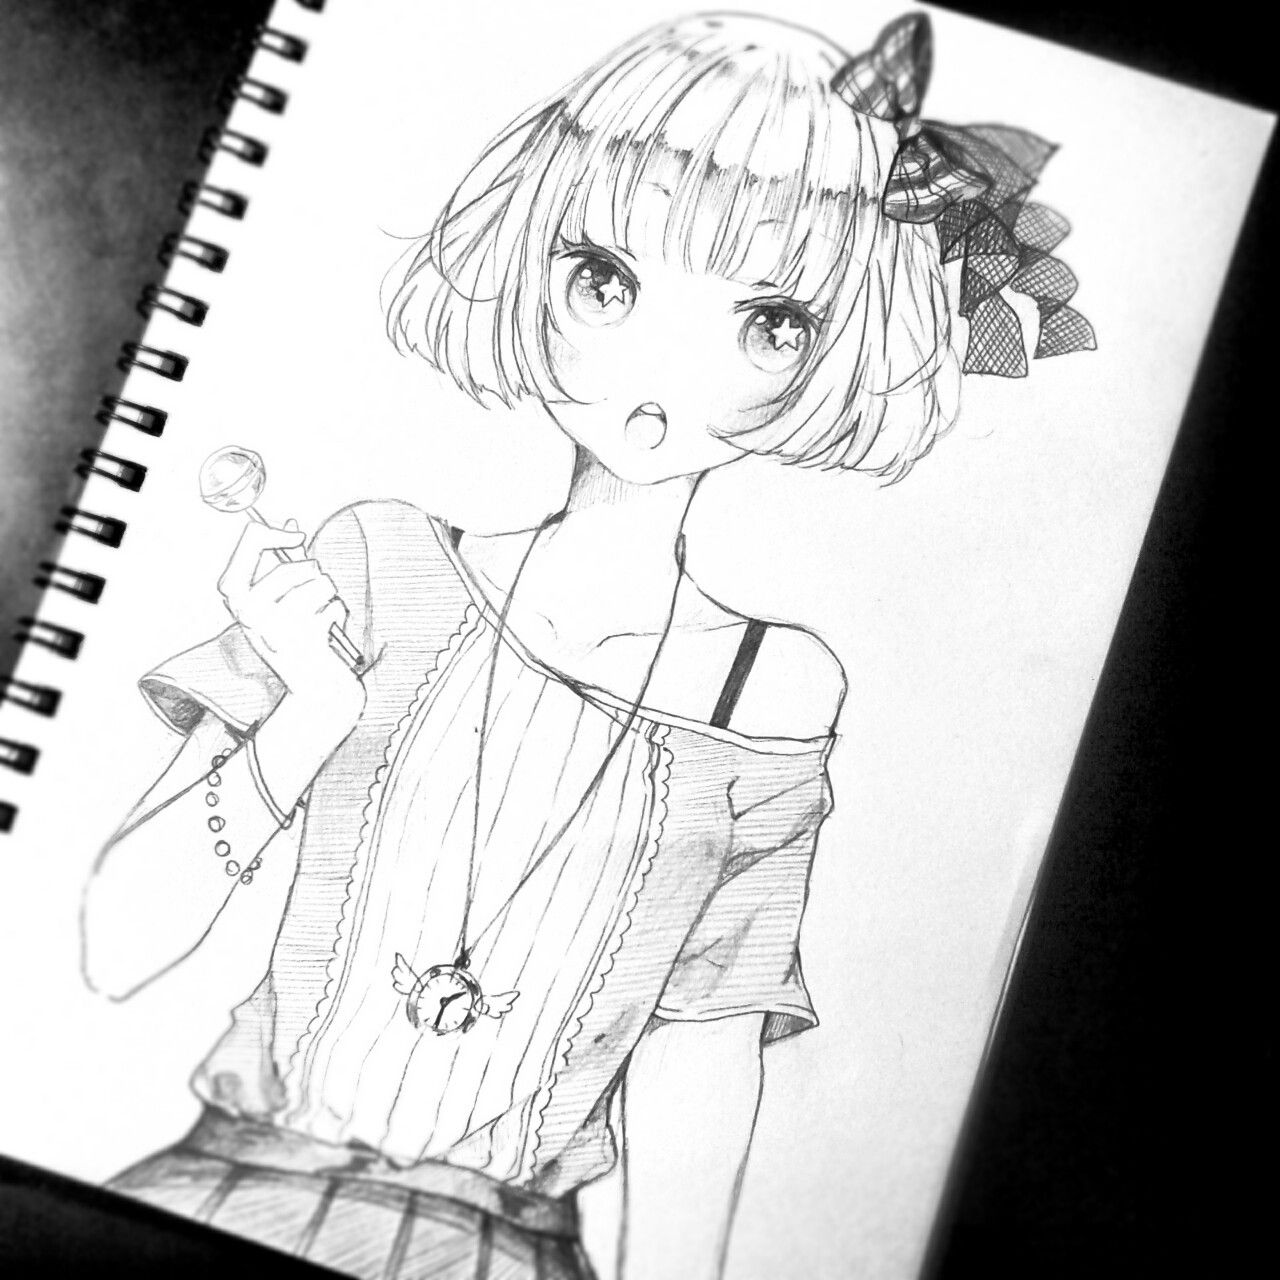 Anime art ✮ anime girl short hair hair bow necklace jewelry cute fashion lollipop pencil drawing sketch graphite